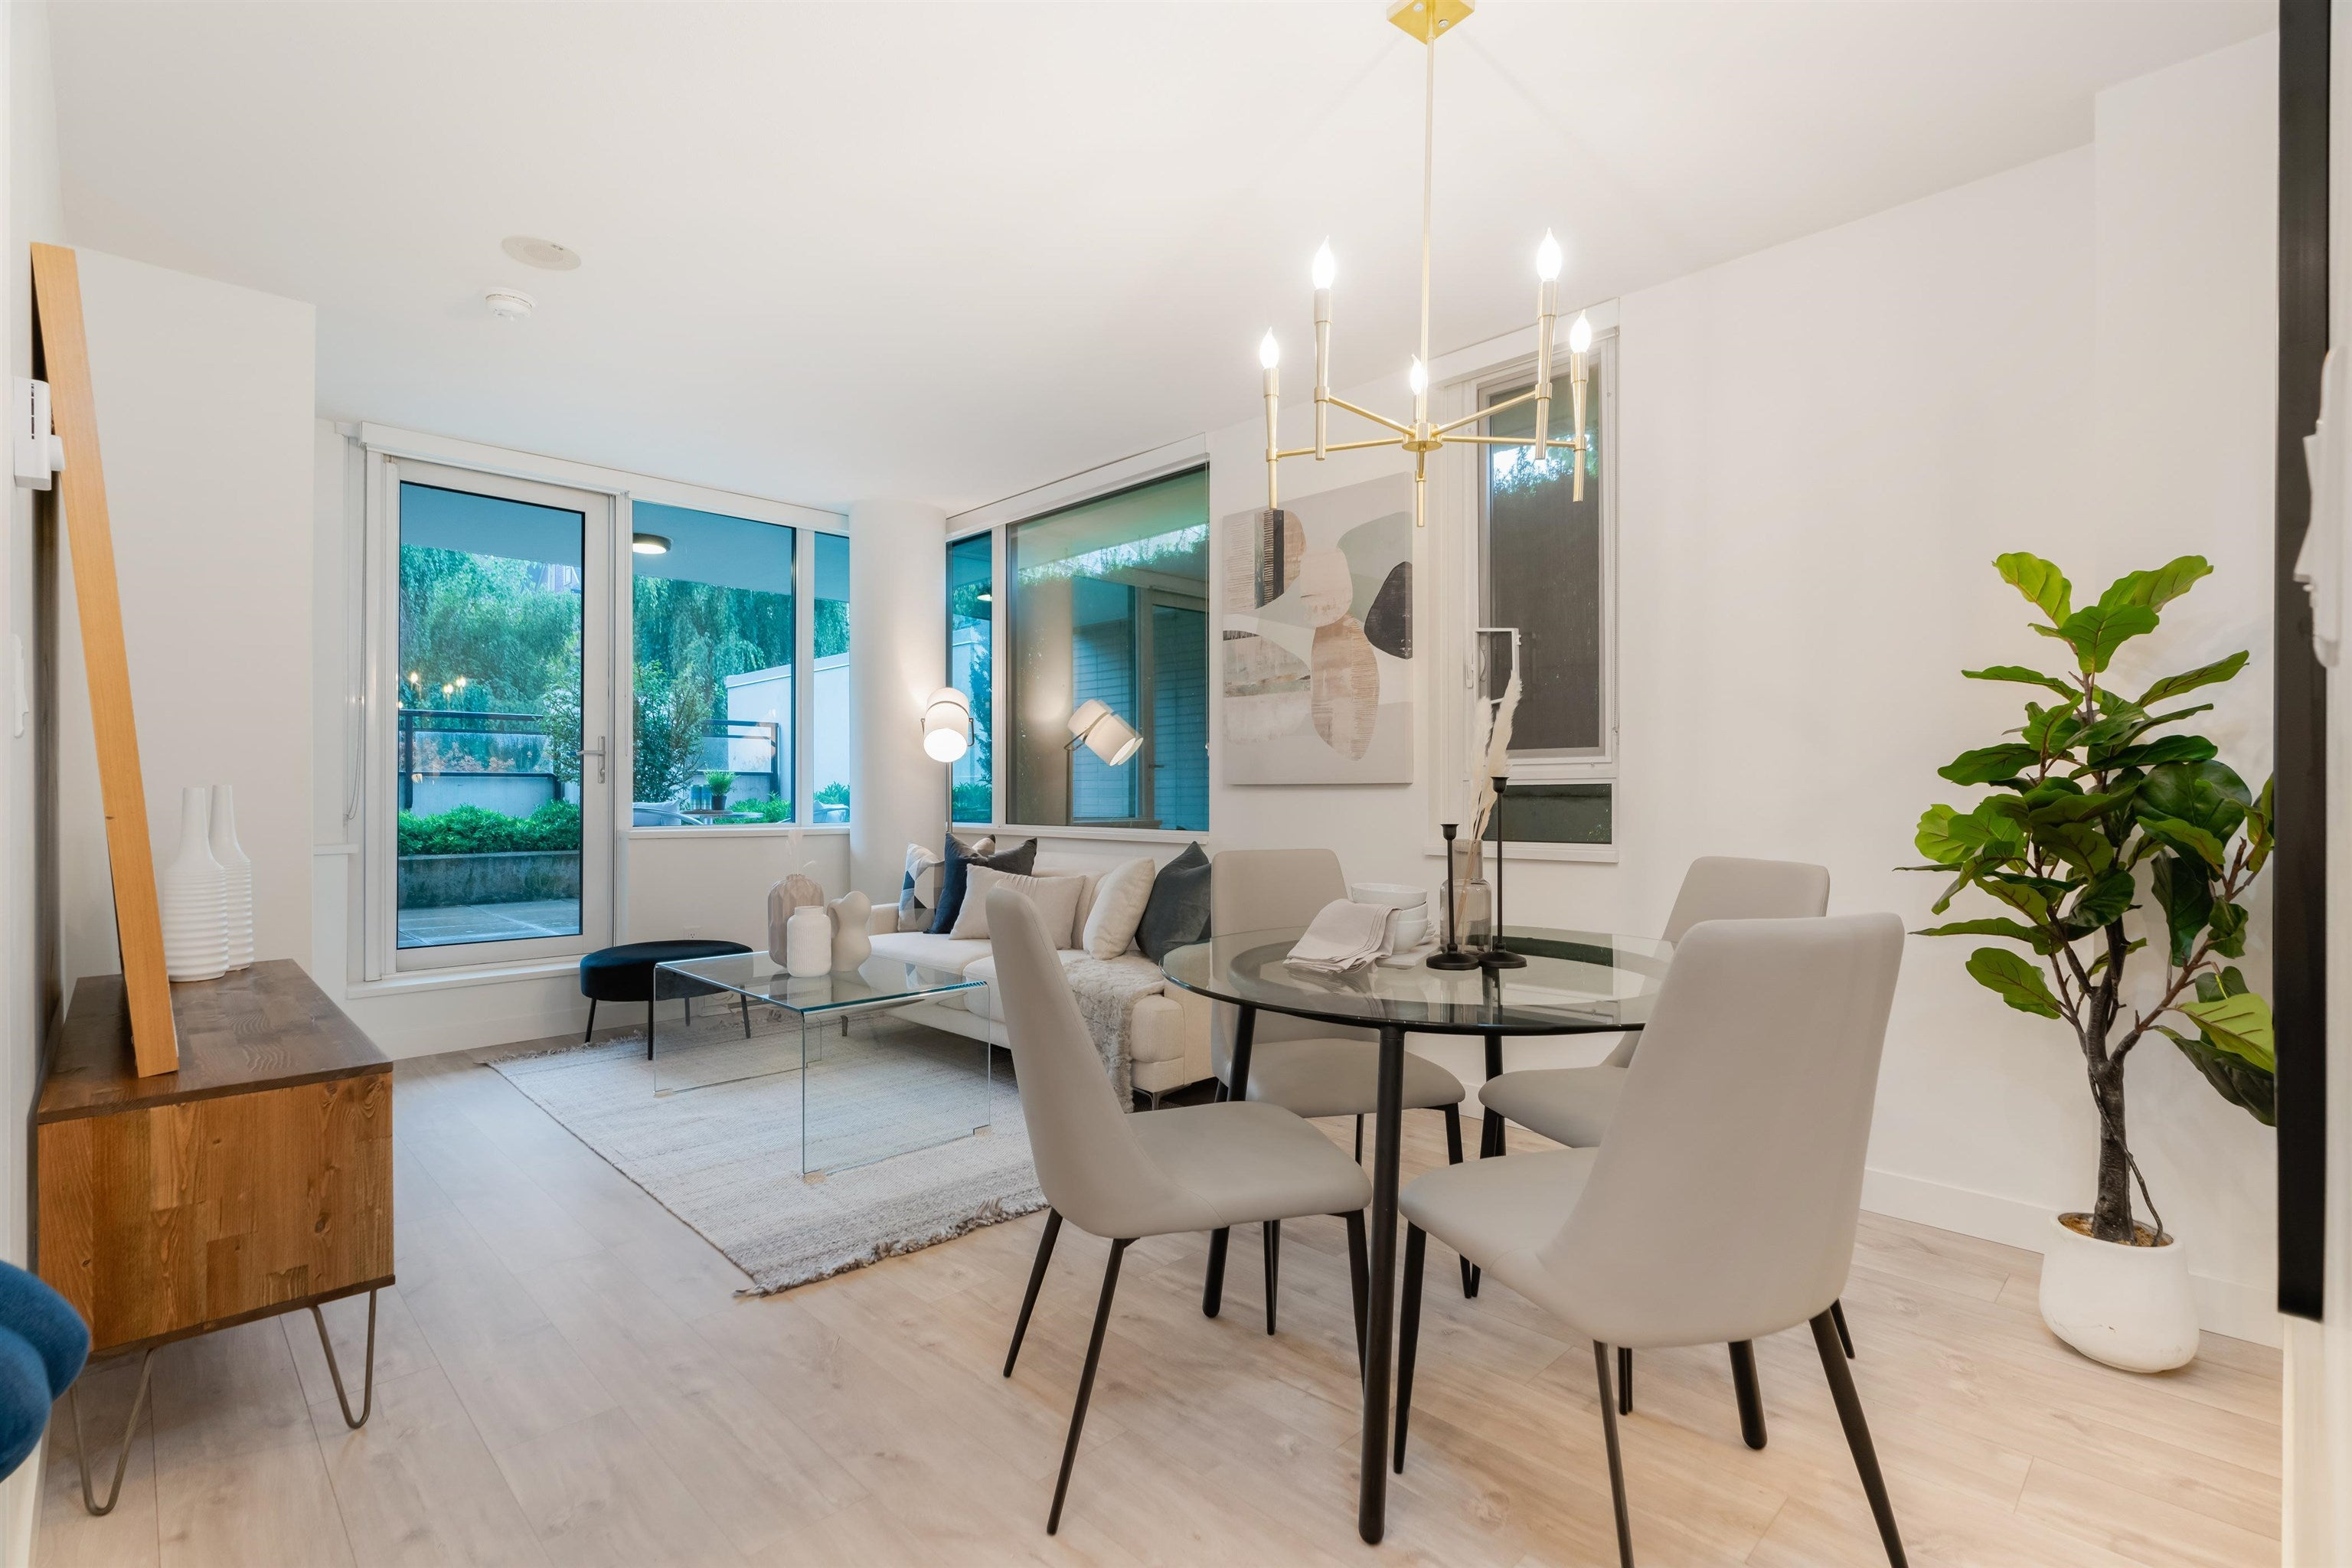 203 238 W BROADWAY - Mount Pleasant VW Apartment/Condo for sale, 2 Bedrooms (R2619543)